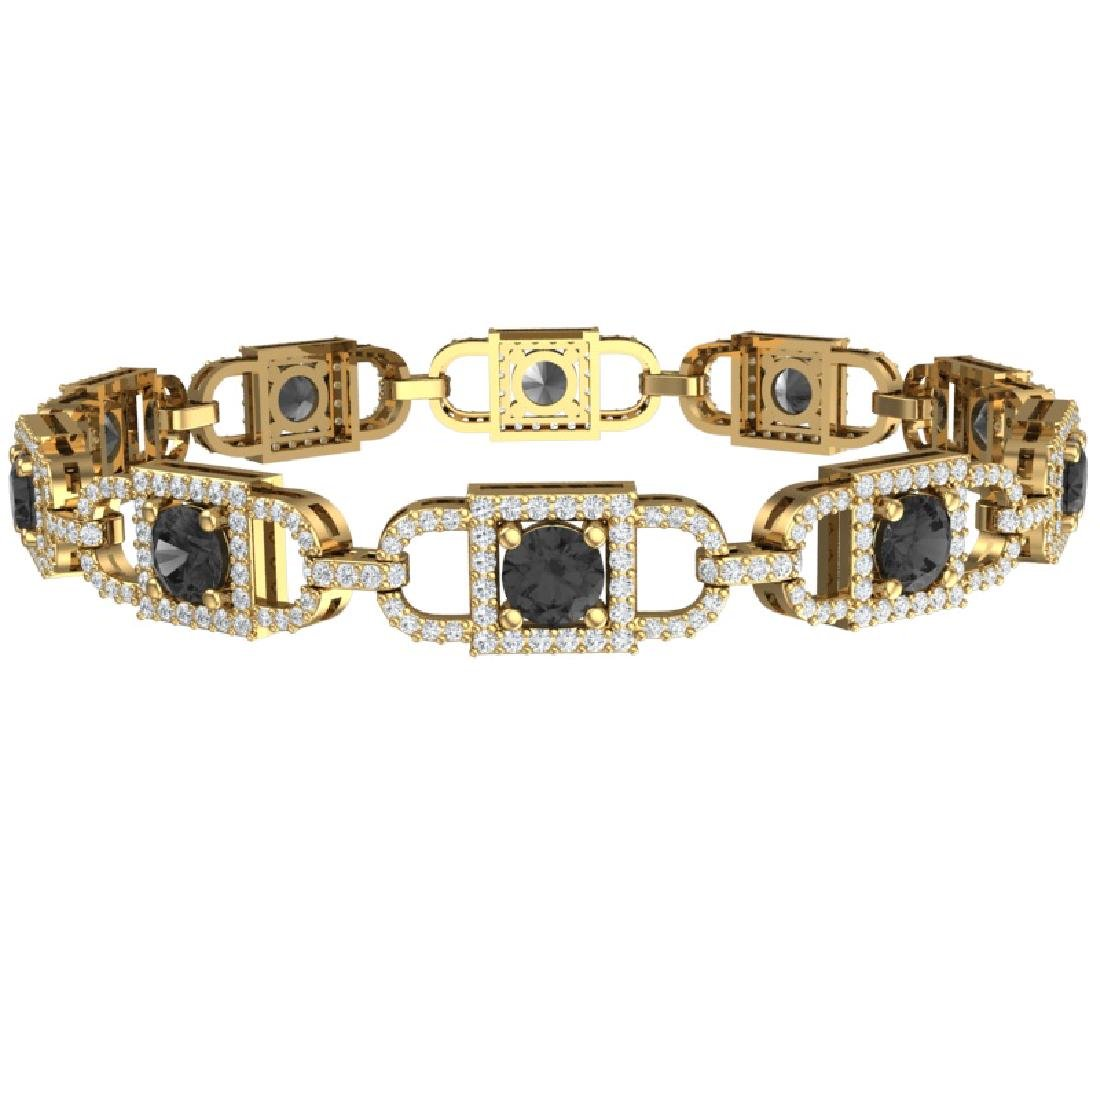 8 CTW Black And White Diamond Bracelet 18K Yellow Gold - 3